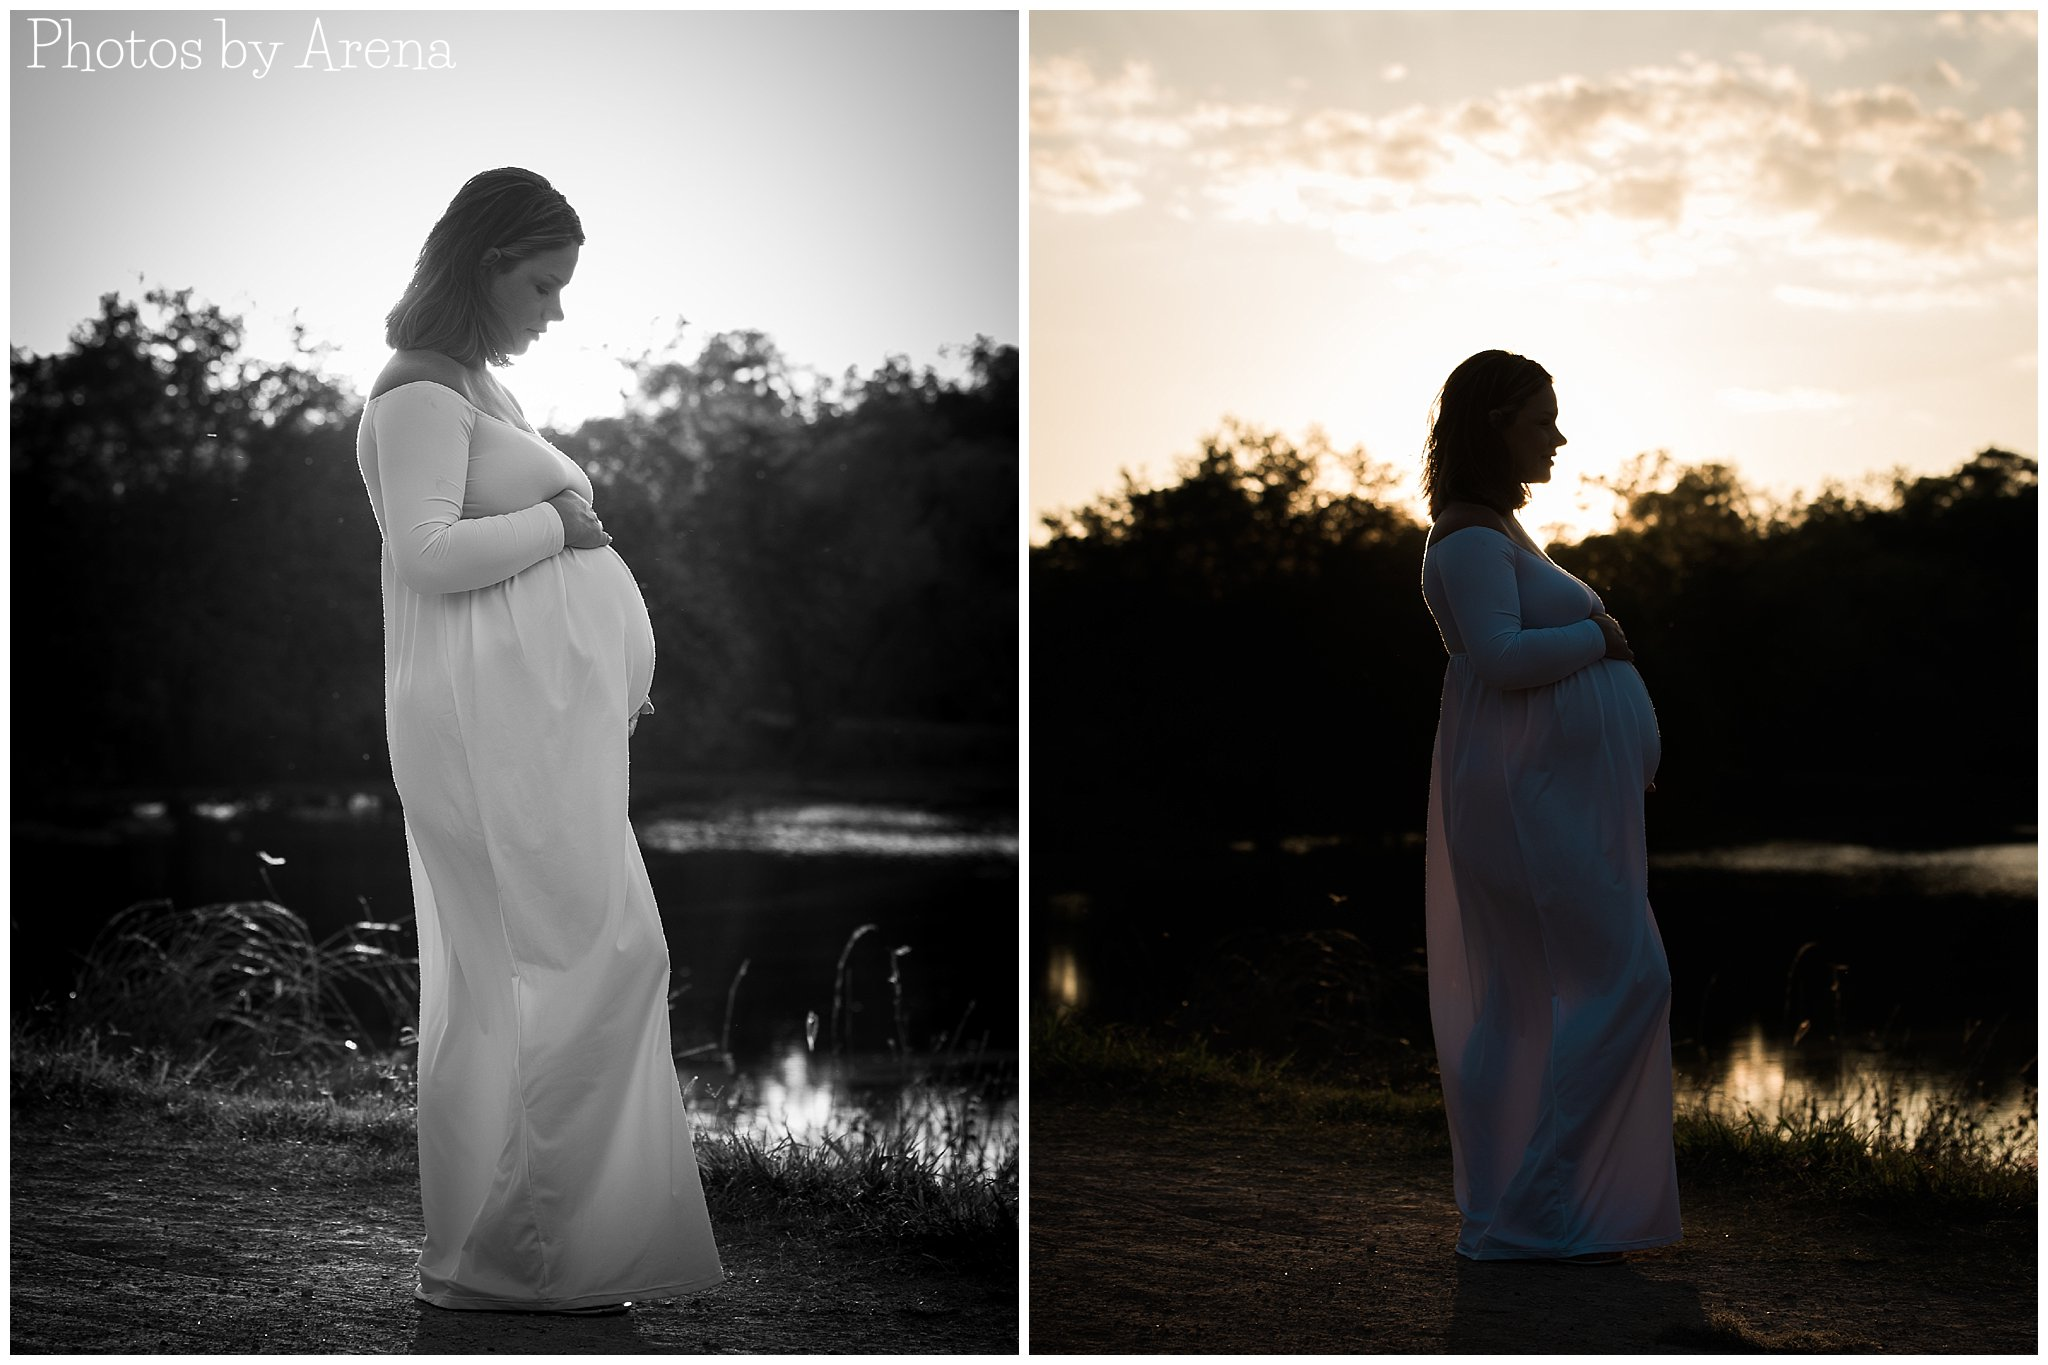 I couldn't decide if I like the black & white or color versions of these better.  Which do you like?  Leave a comment below and let me know!